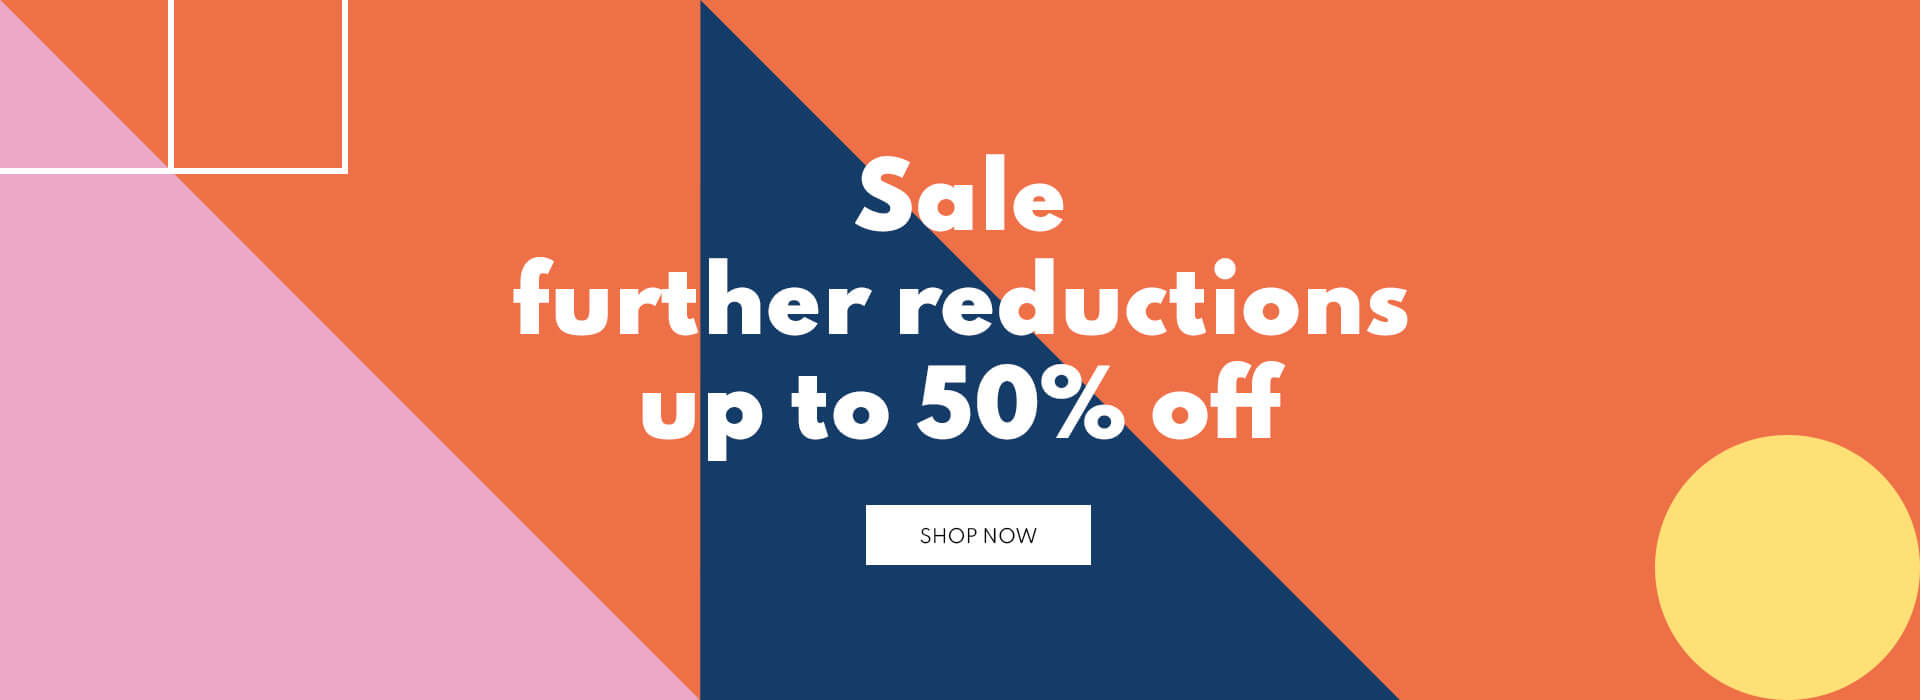 The Hut The Hut: Sale up to 50% off clothing, footwear, bags, accessories and homeware